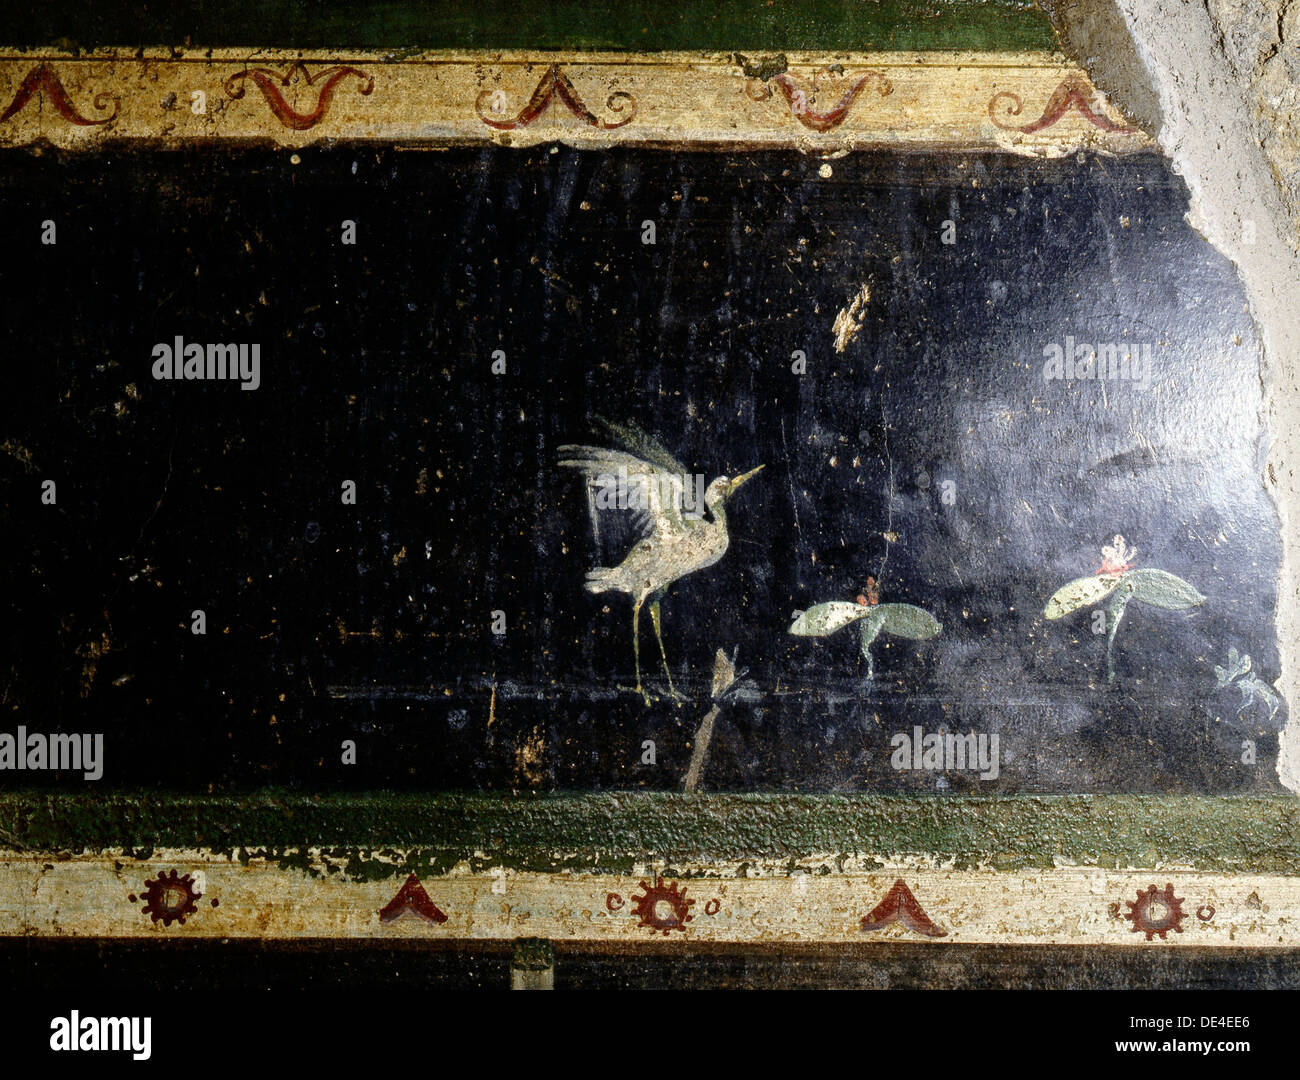 Fresco from the Villa of the Mysteries. - Stock Image